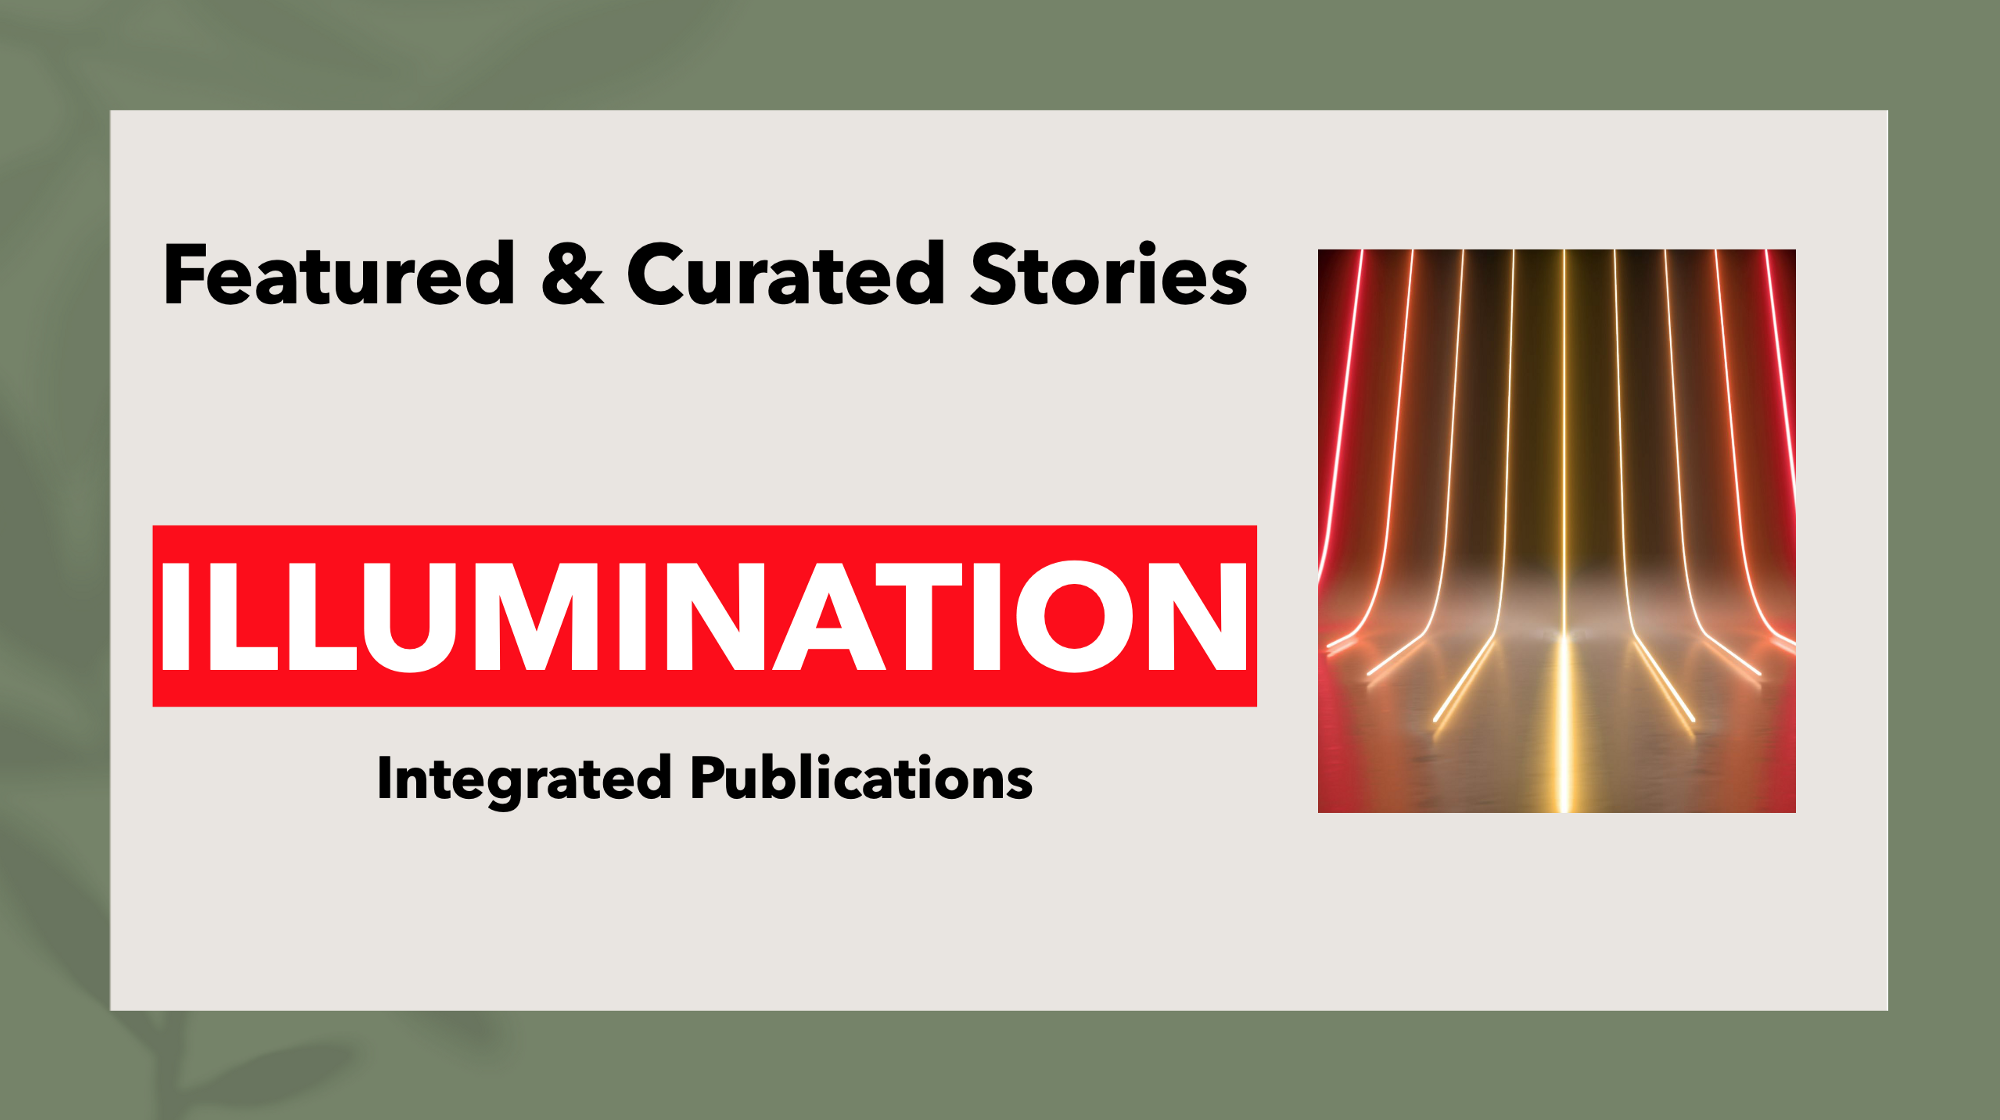 Stories Chosen by Editors Why ILLUMINATION Integrated Publications Feature Stories Editors' choices are in place. We offer a unique curation and visibility service for storytellers on Medium. Compiled by Chief Editor Dr Mehmet Yildiz on Medium.com https://medium.com/me/settings/promote-subscriptions